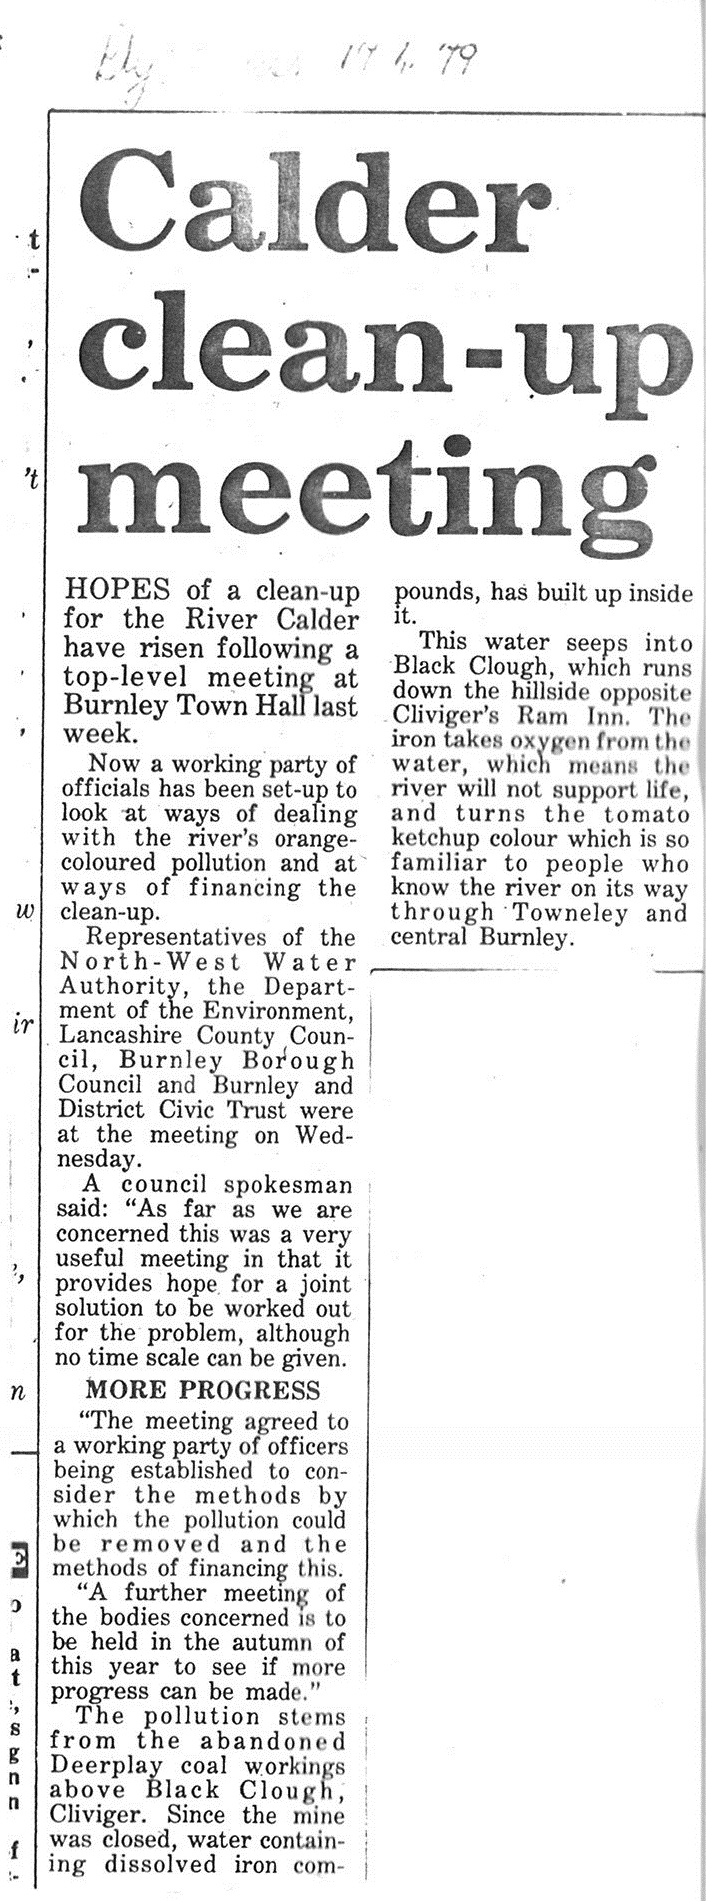 1979 April 17 Calder clean-up meeting.jpg